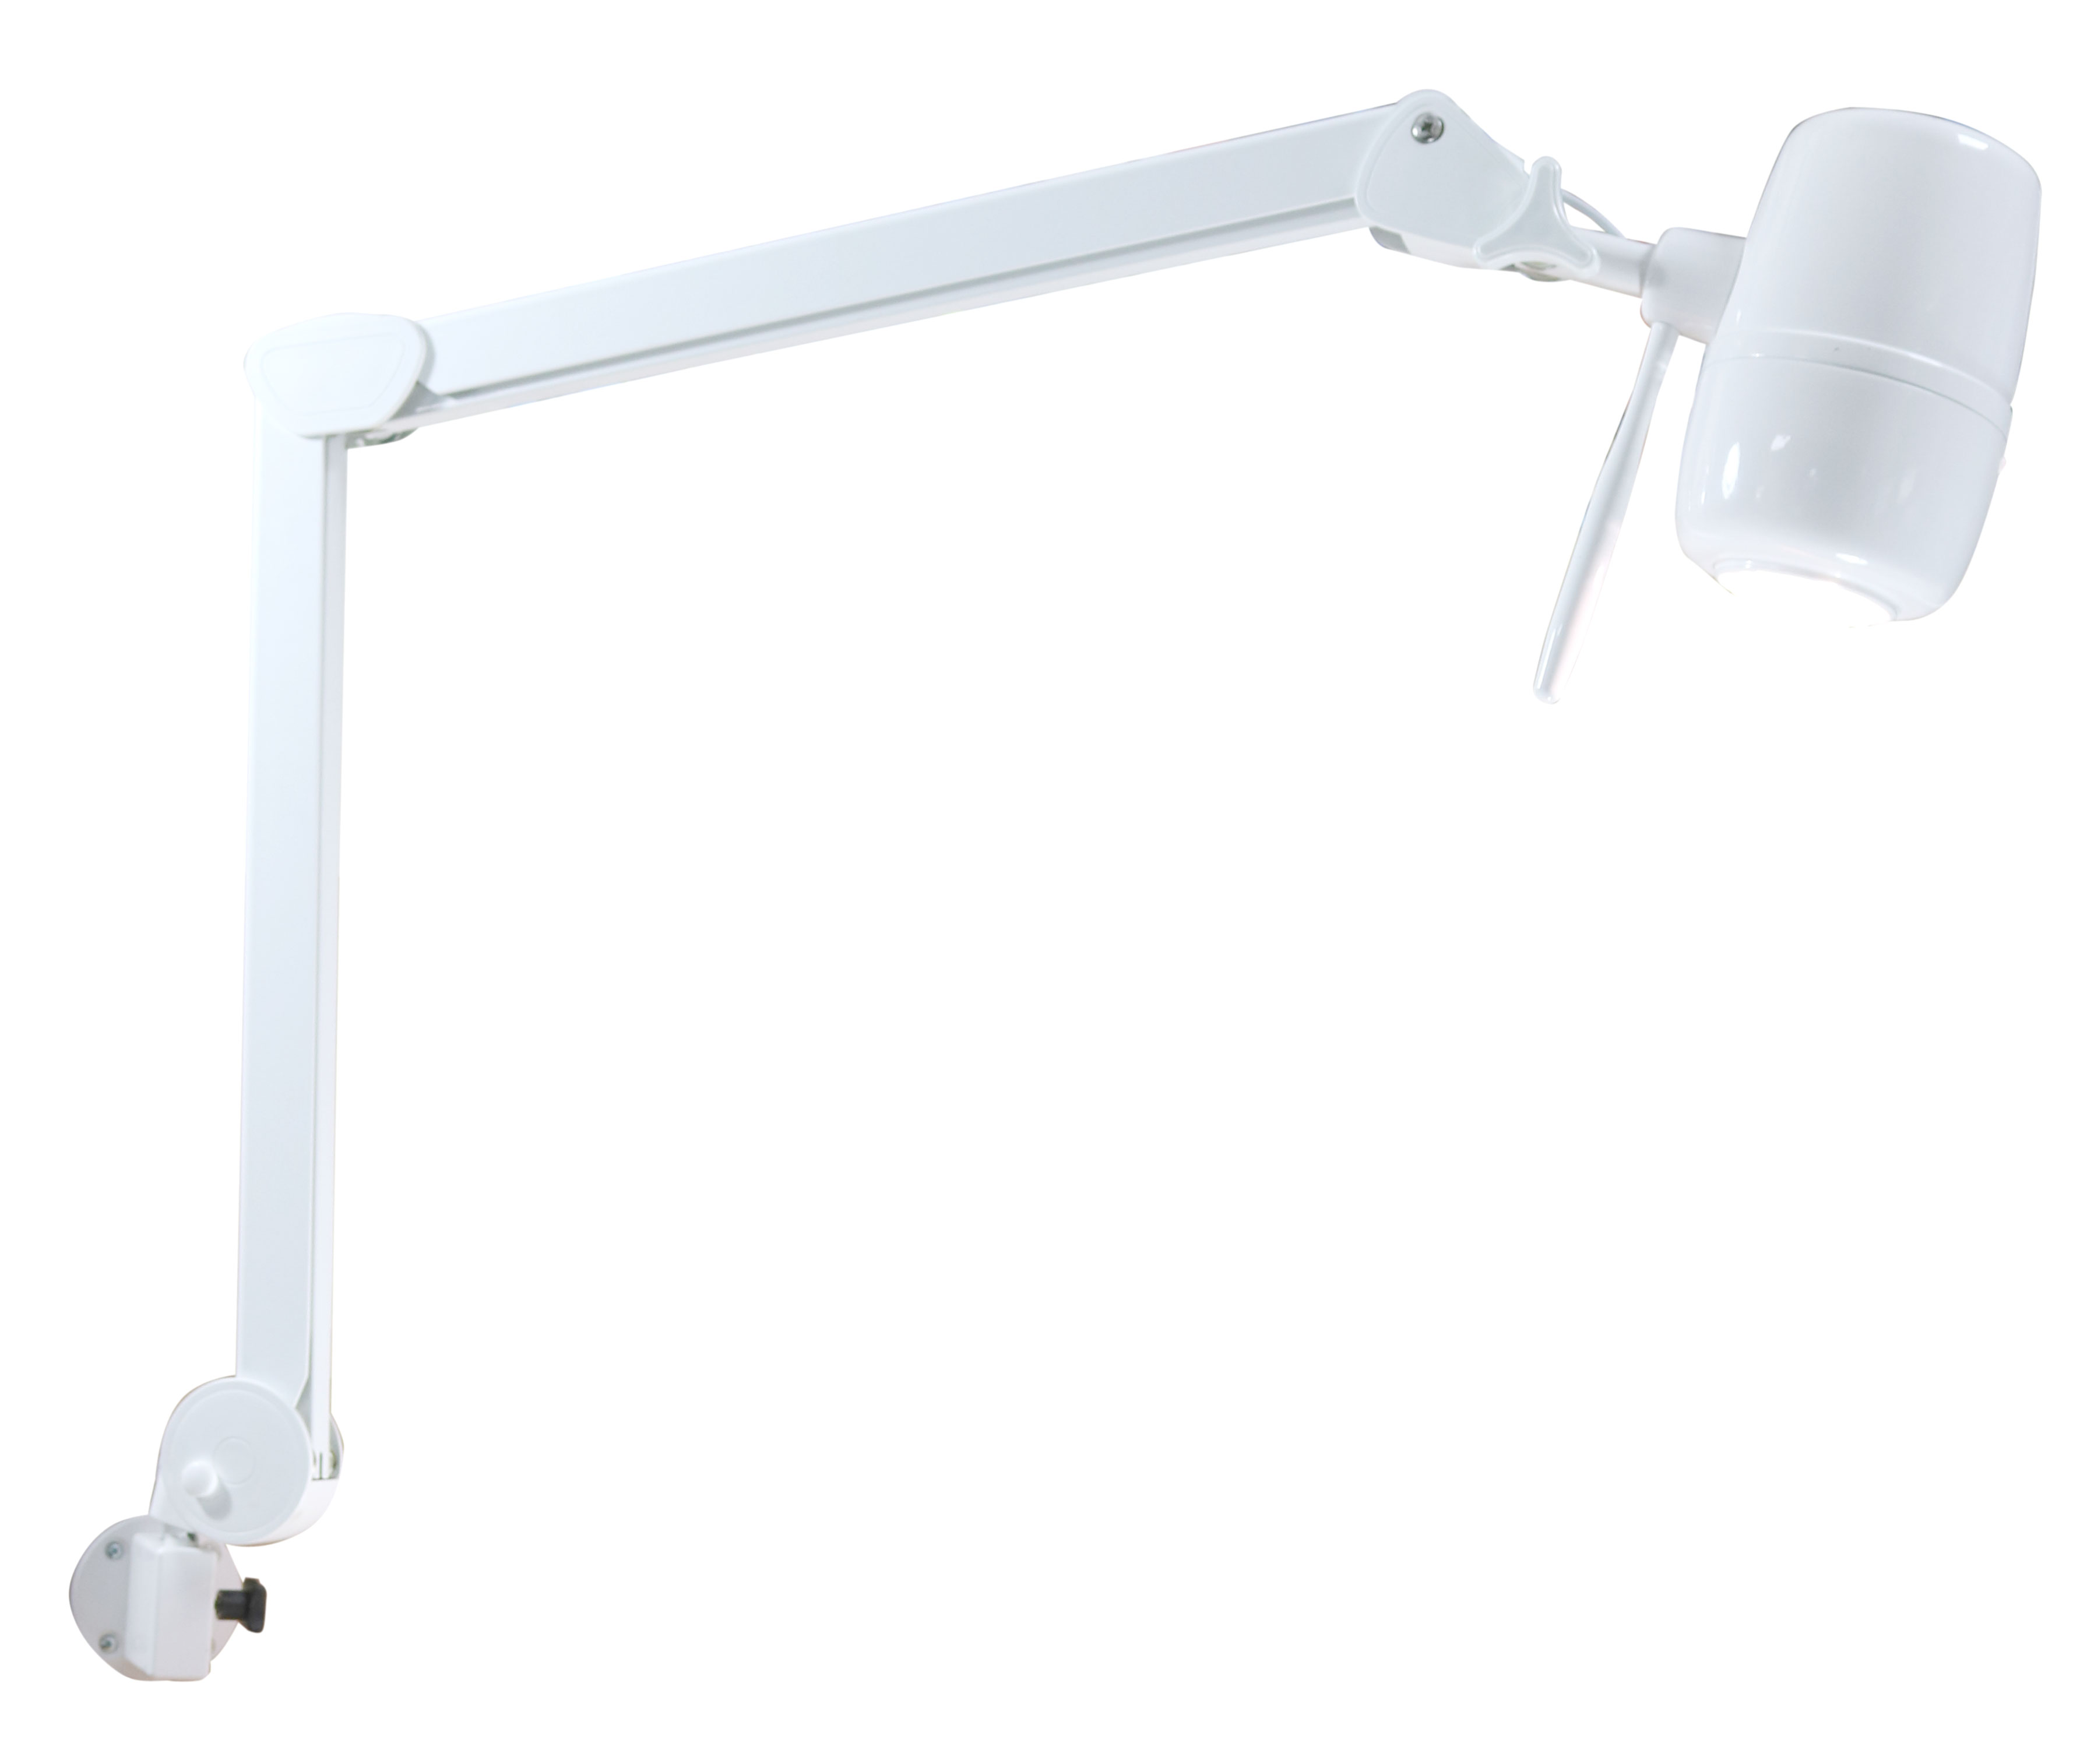 DARAY X340 LED Hardwired BESA Wall Mount Examination Light (special order)